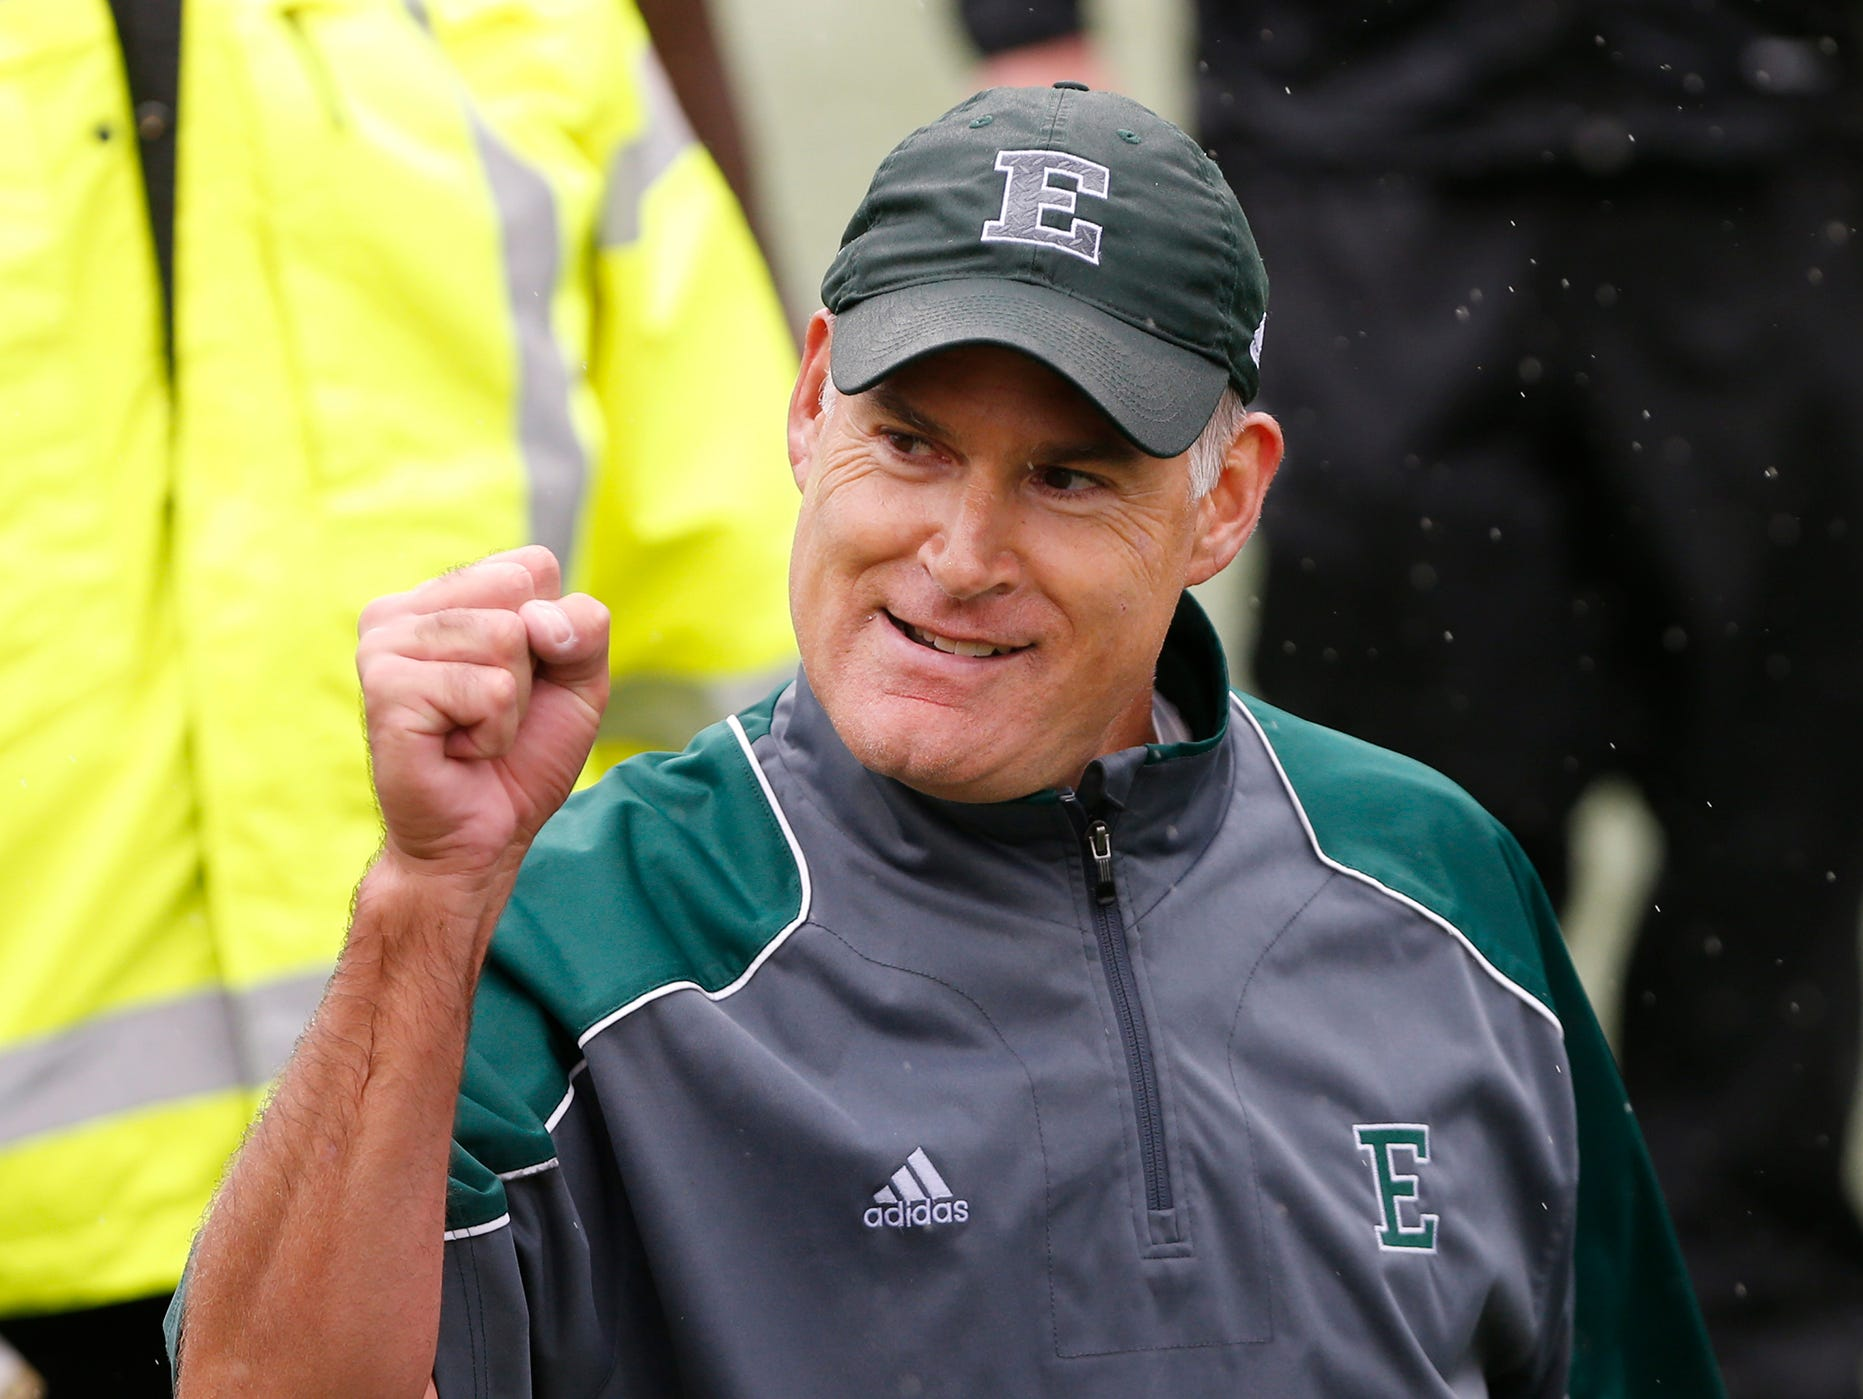 Eastern Michigan head coach Chris Creighton pumps his fist after the Eagles defeated Purdue 20-19 Saturday, September 8, 2018, in West Lafayette.